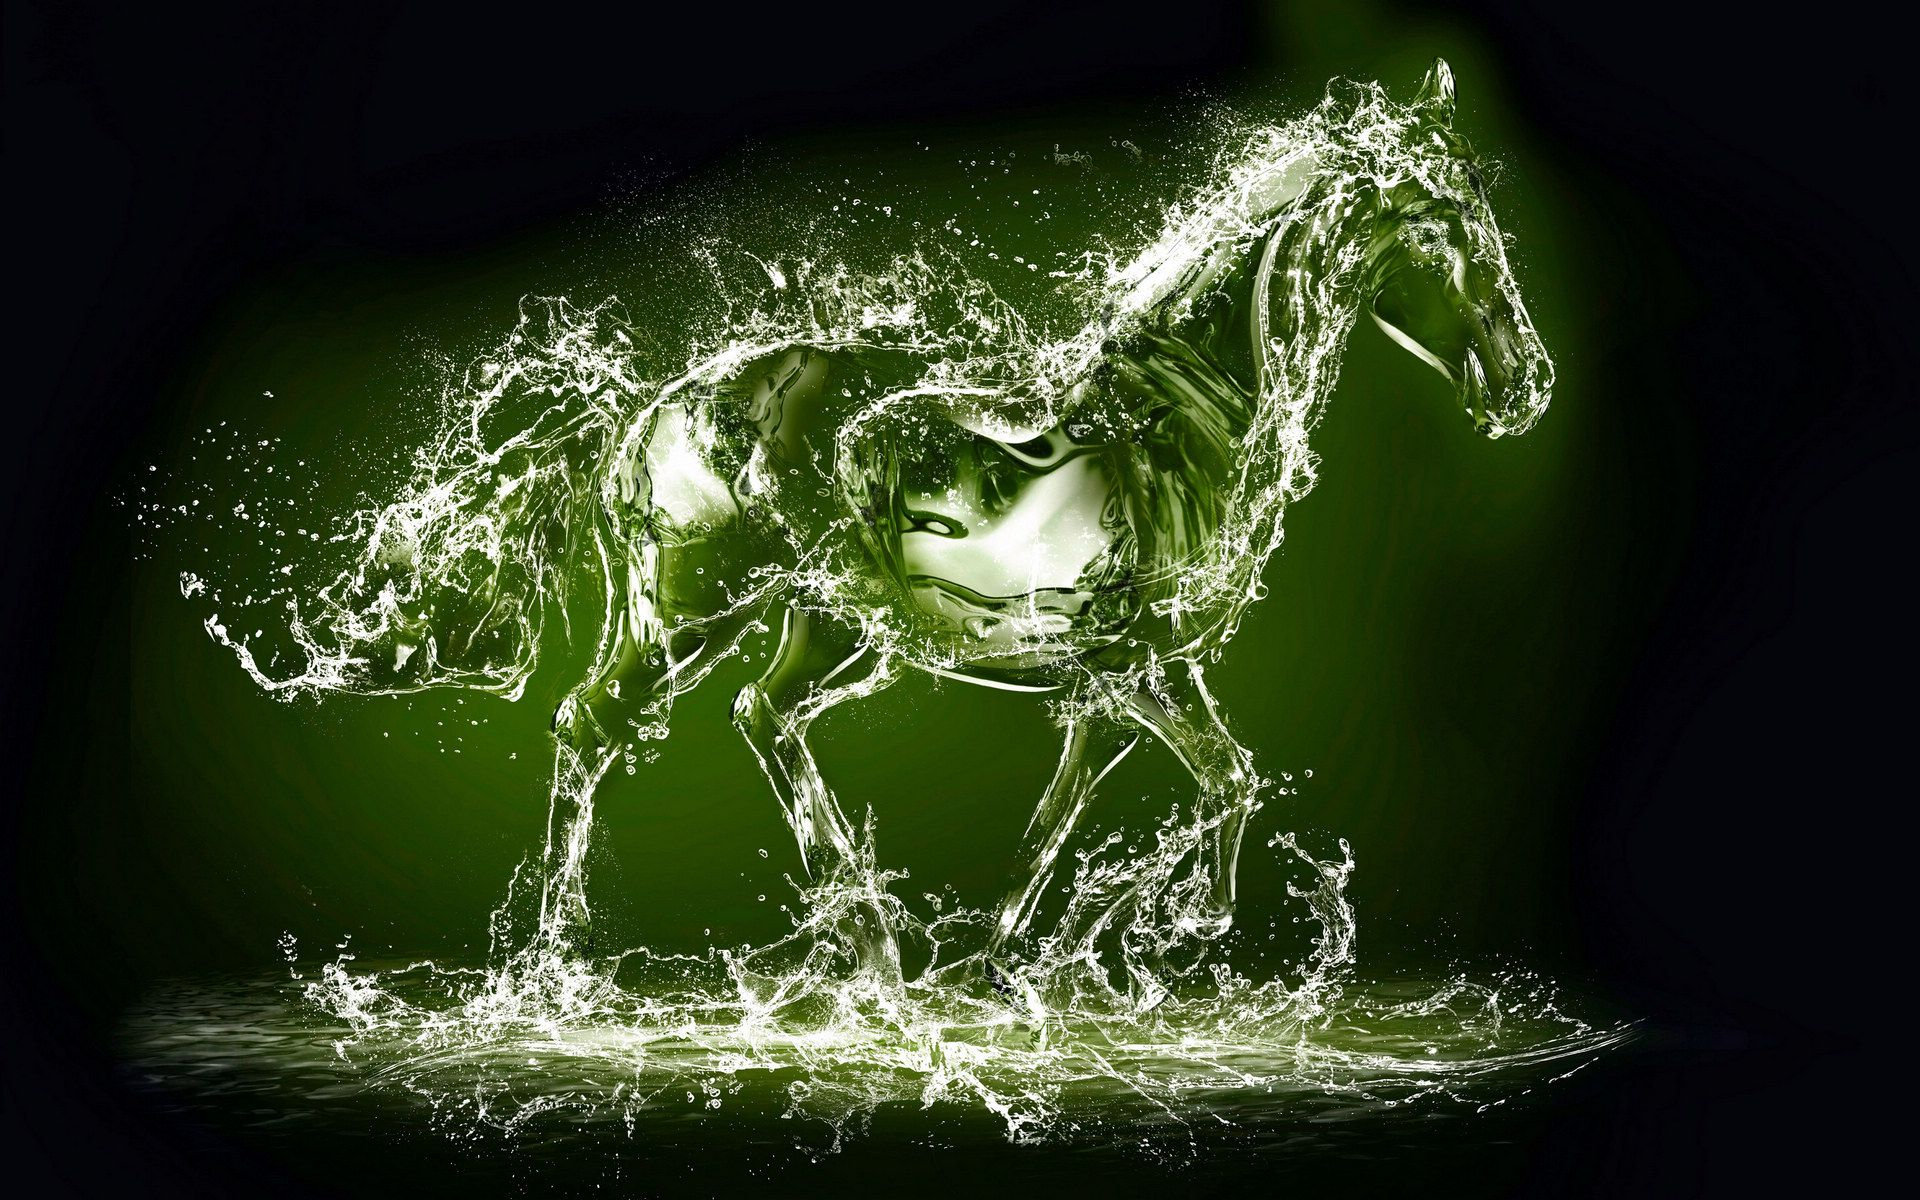 Creative 3d Ma Gaoqing Wallpaper Wave High Definition Wallpaper Water Art Horse Wallpaper Art Wallpaper